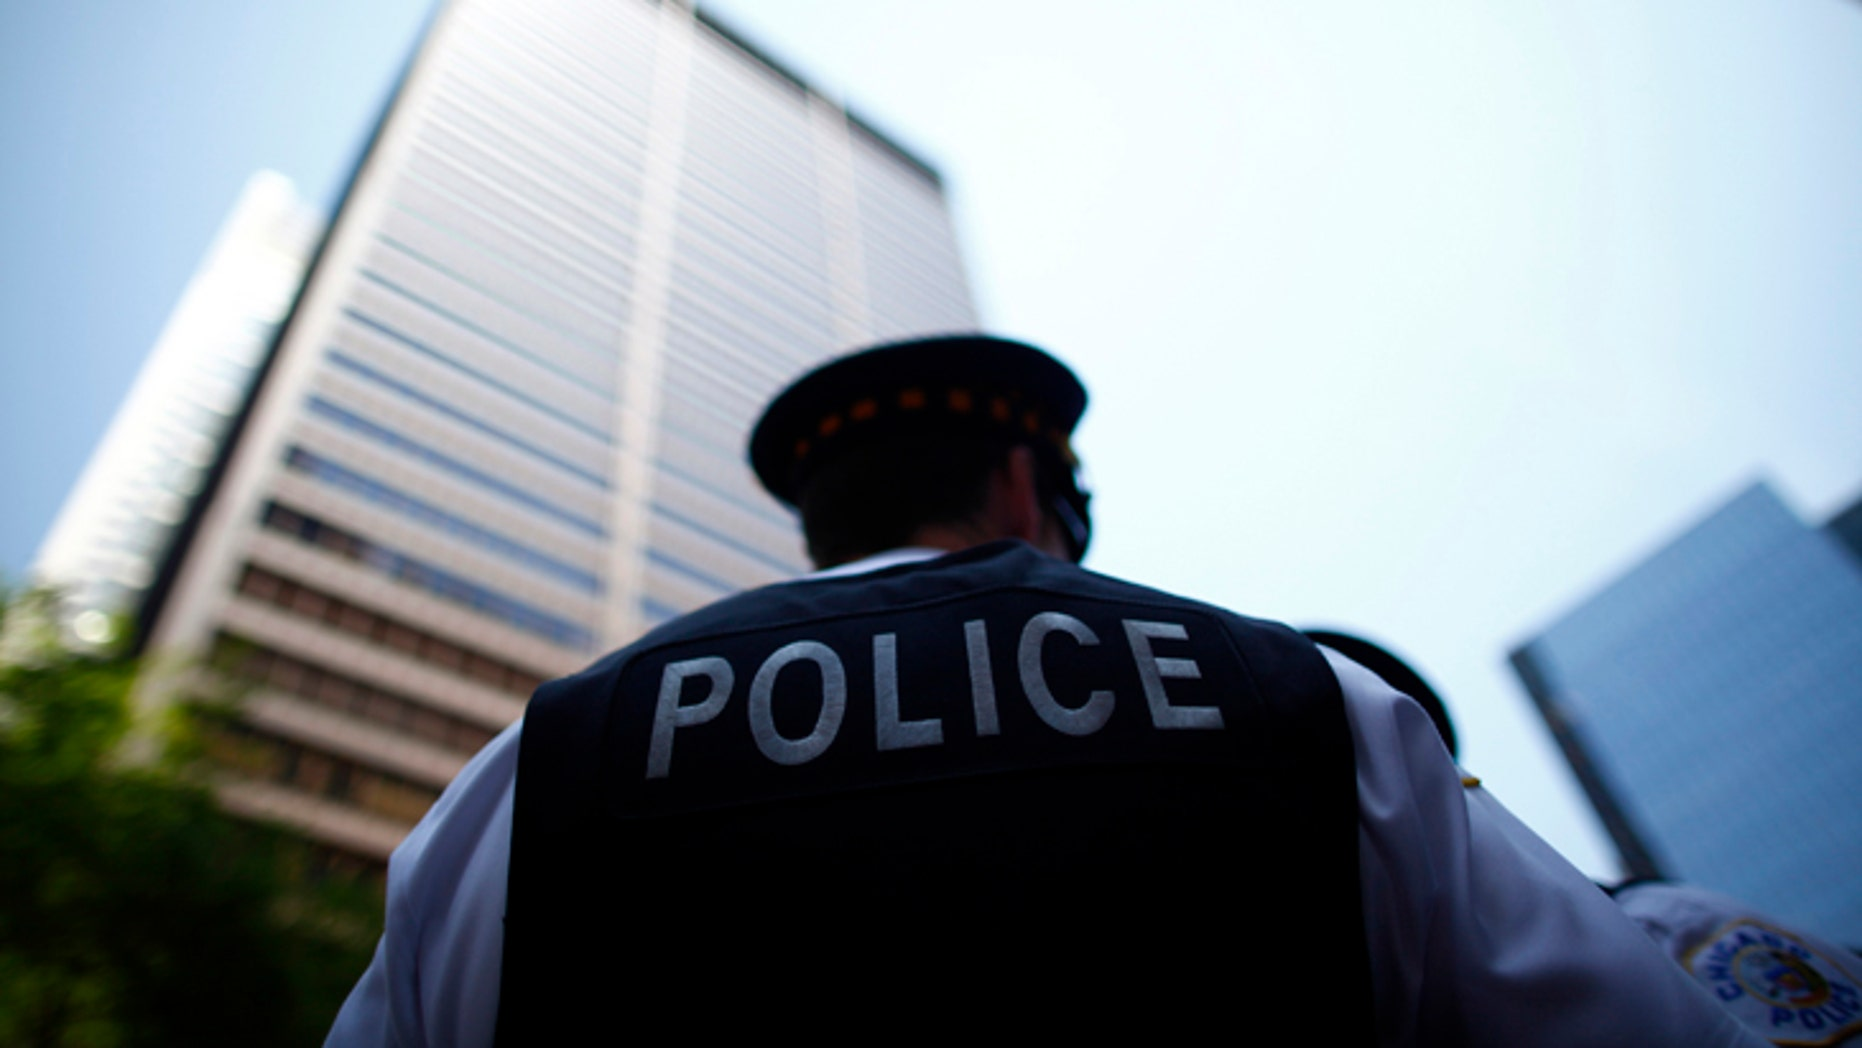 File photo - Police officers watch as protesters rally during a demonstration leading up to the NATO Summit in Chicago May 18, 2012. (REUTERS/Eric Thayer)